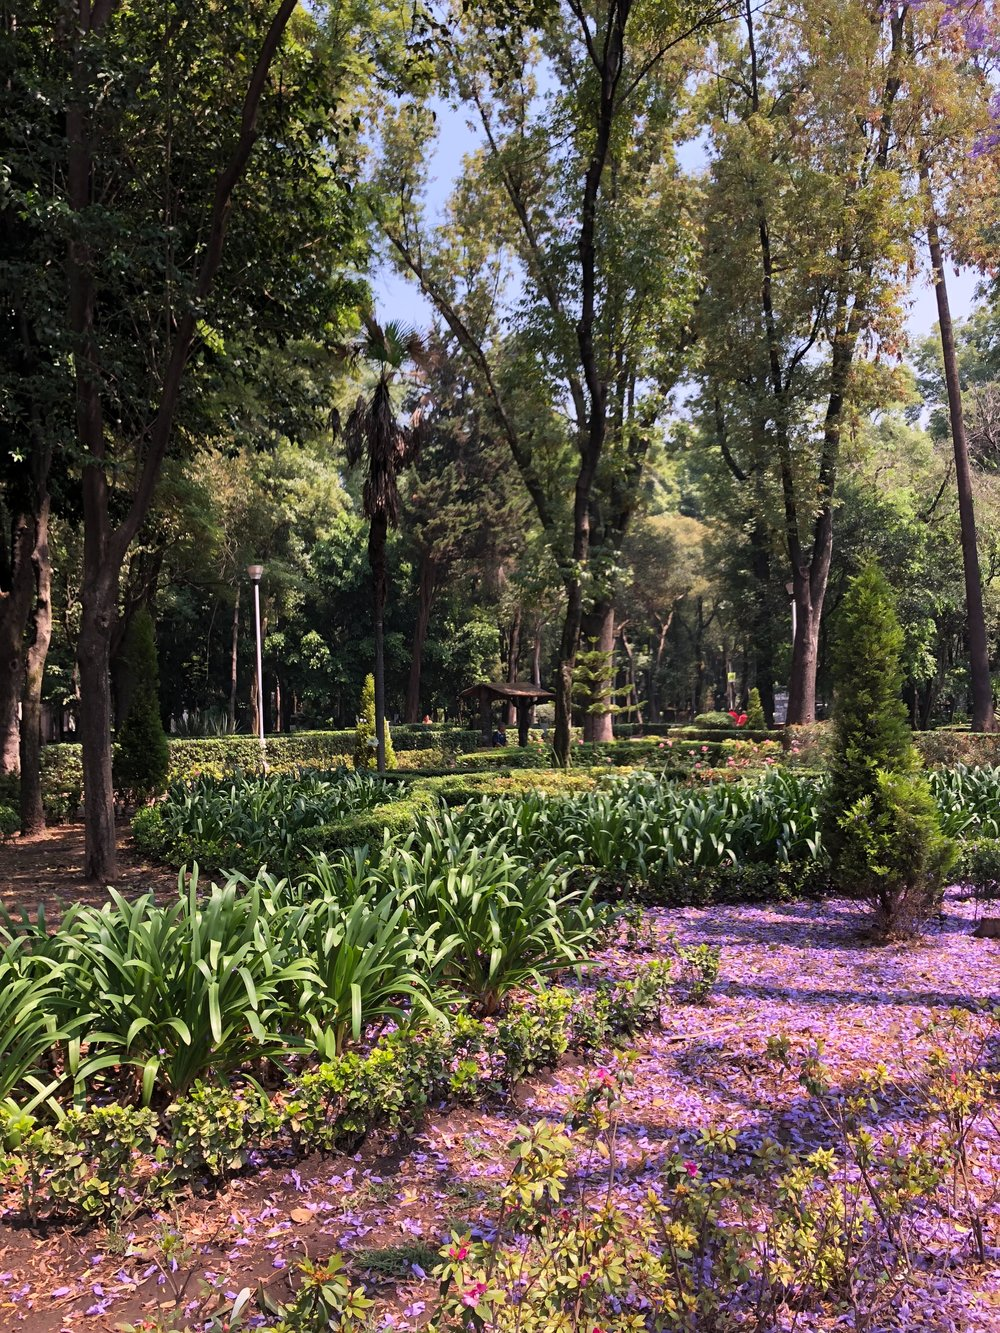 Parque Mexico in Condesa. This was a 5 minute walk from our Airbnb.